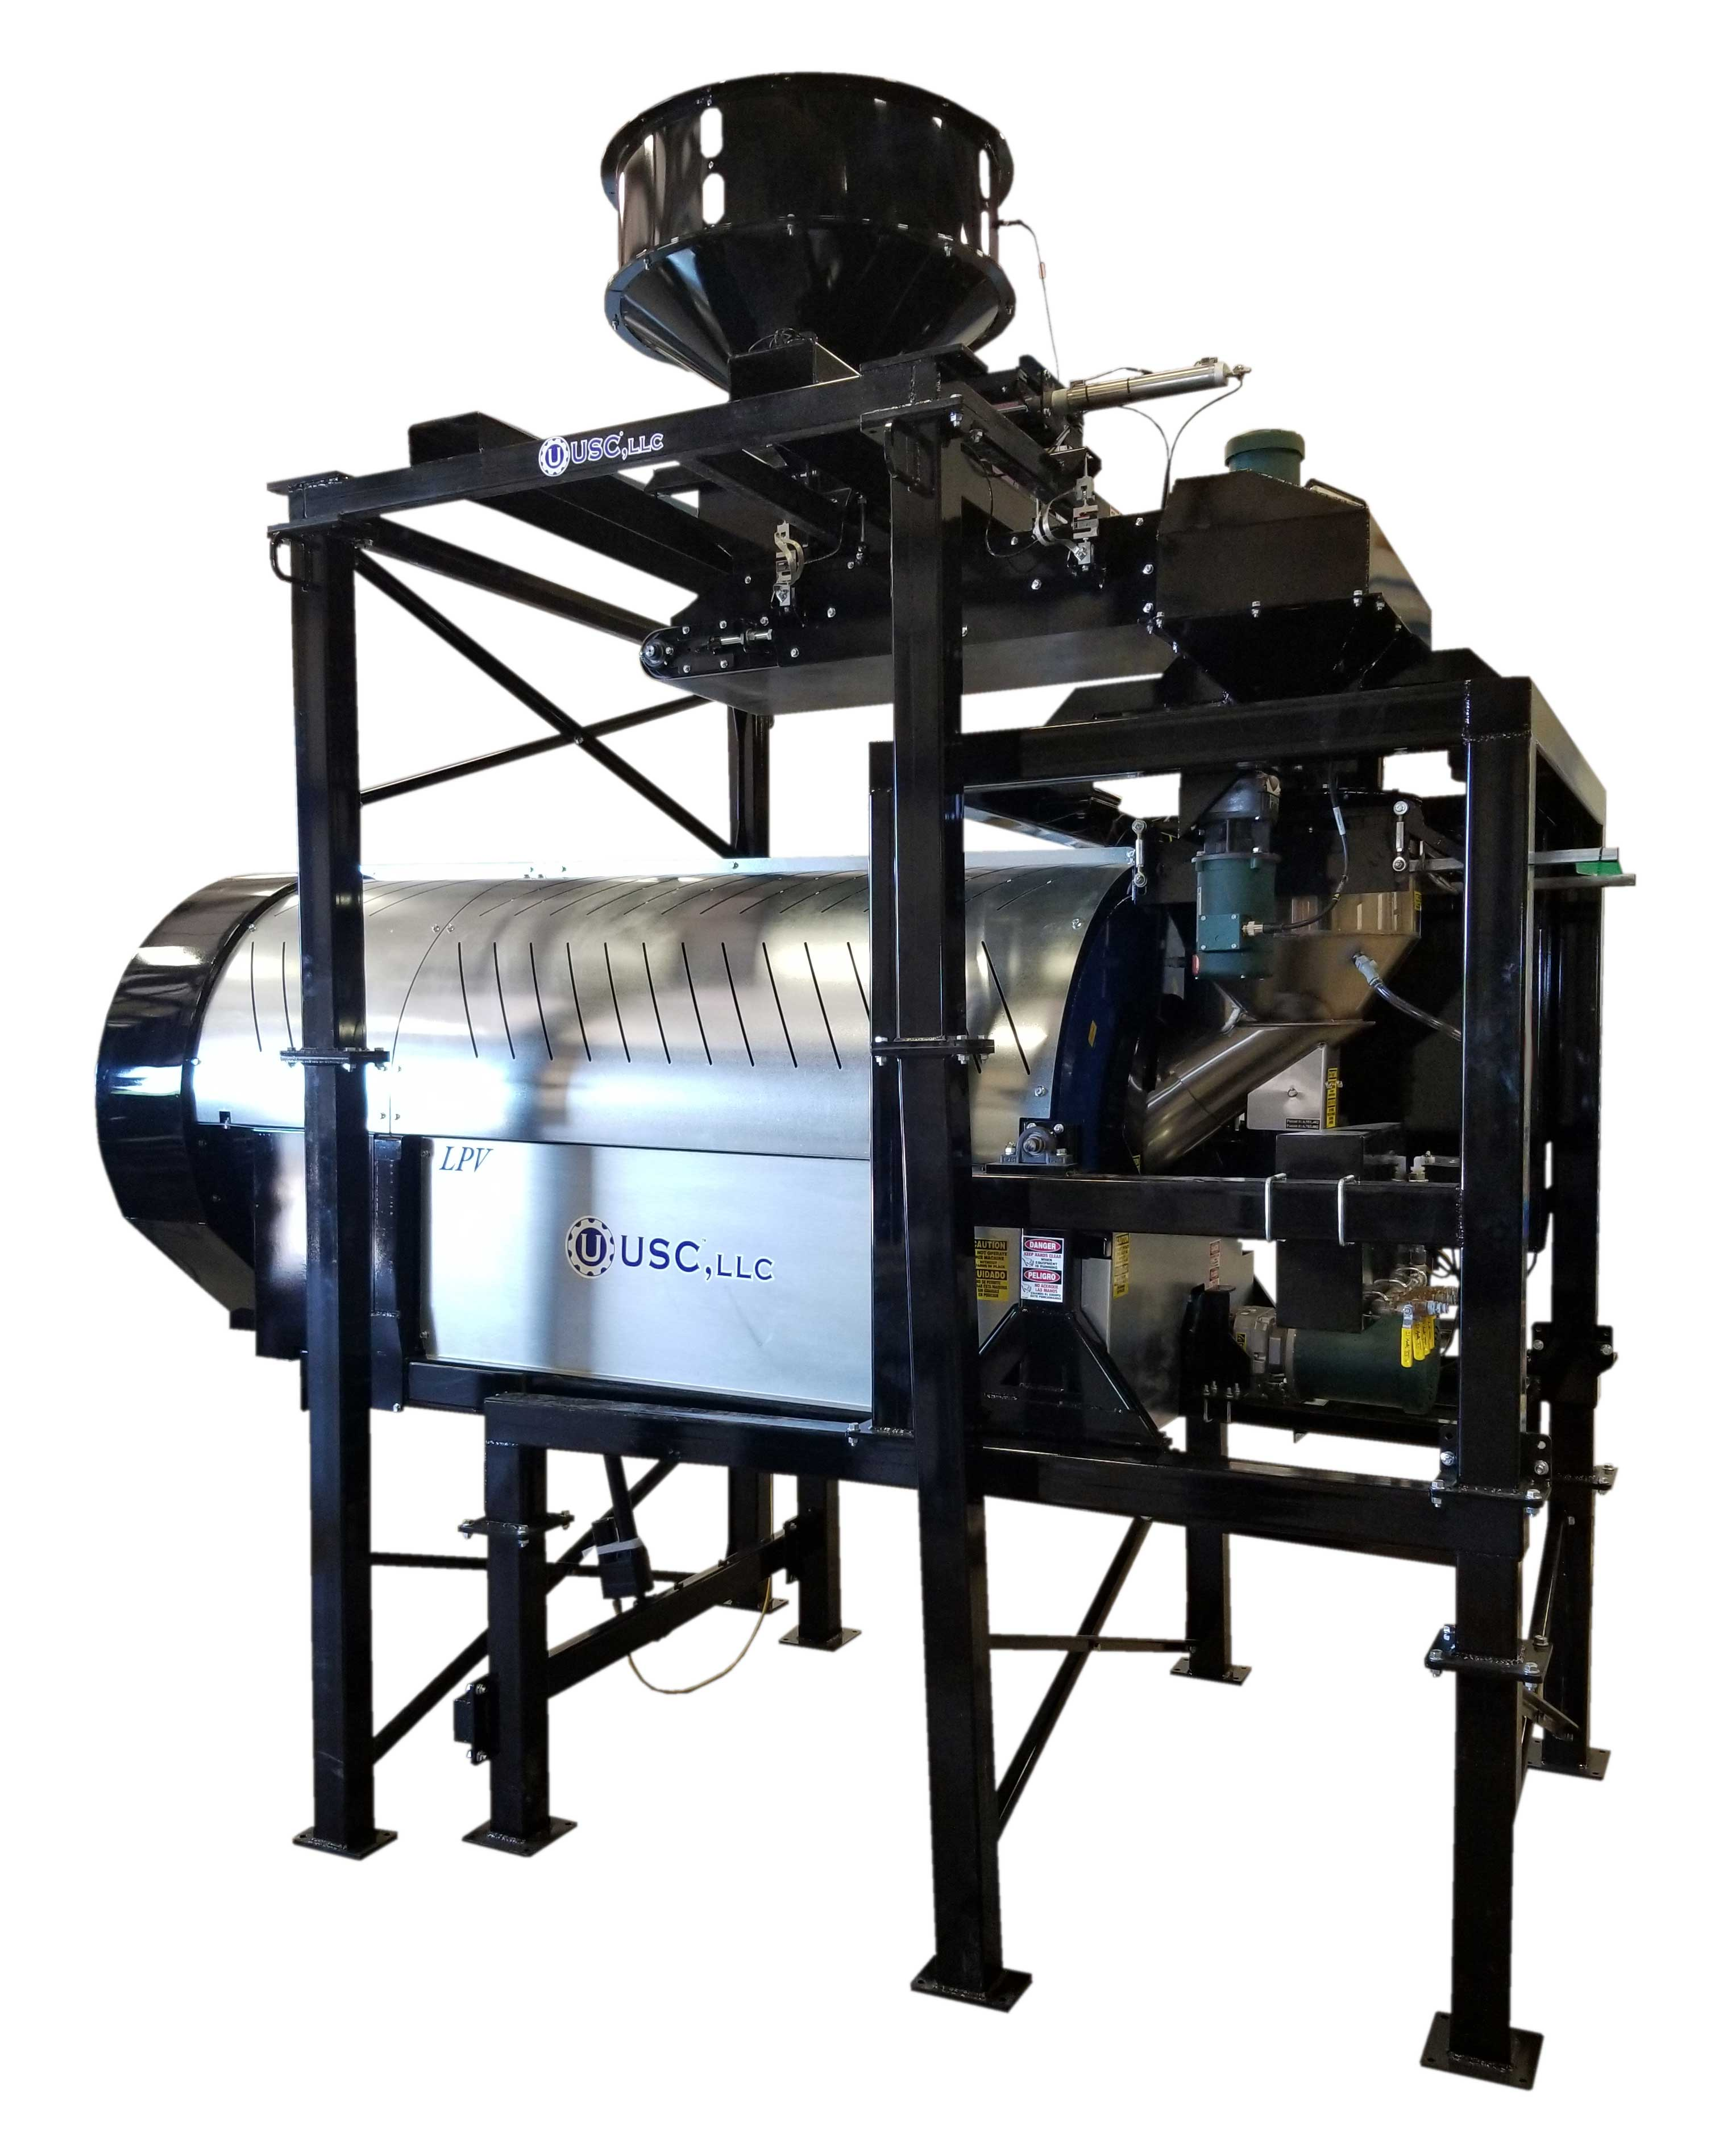 Image of a High Capacity LPV Seed Treater on a white background.